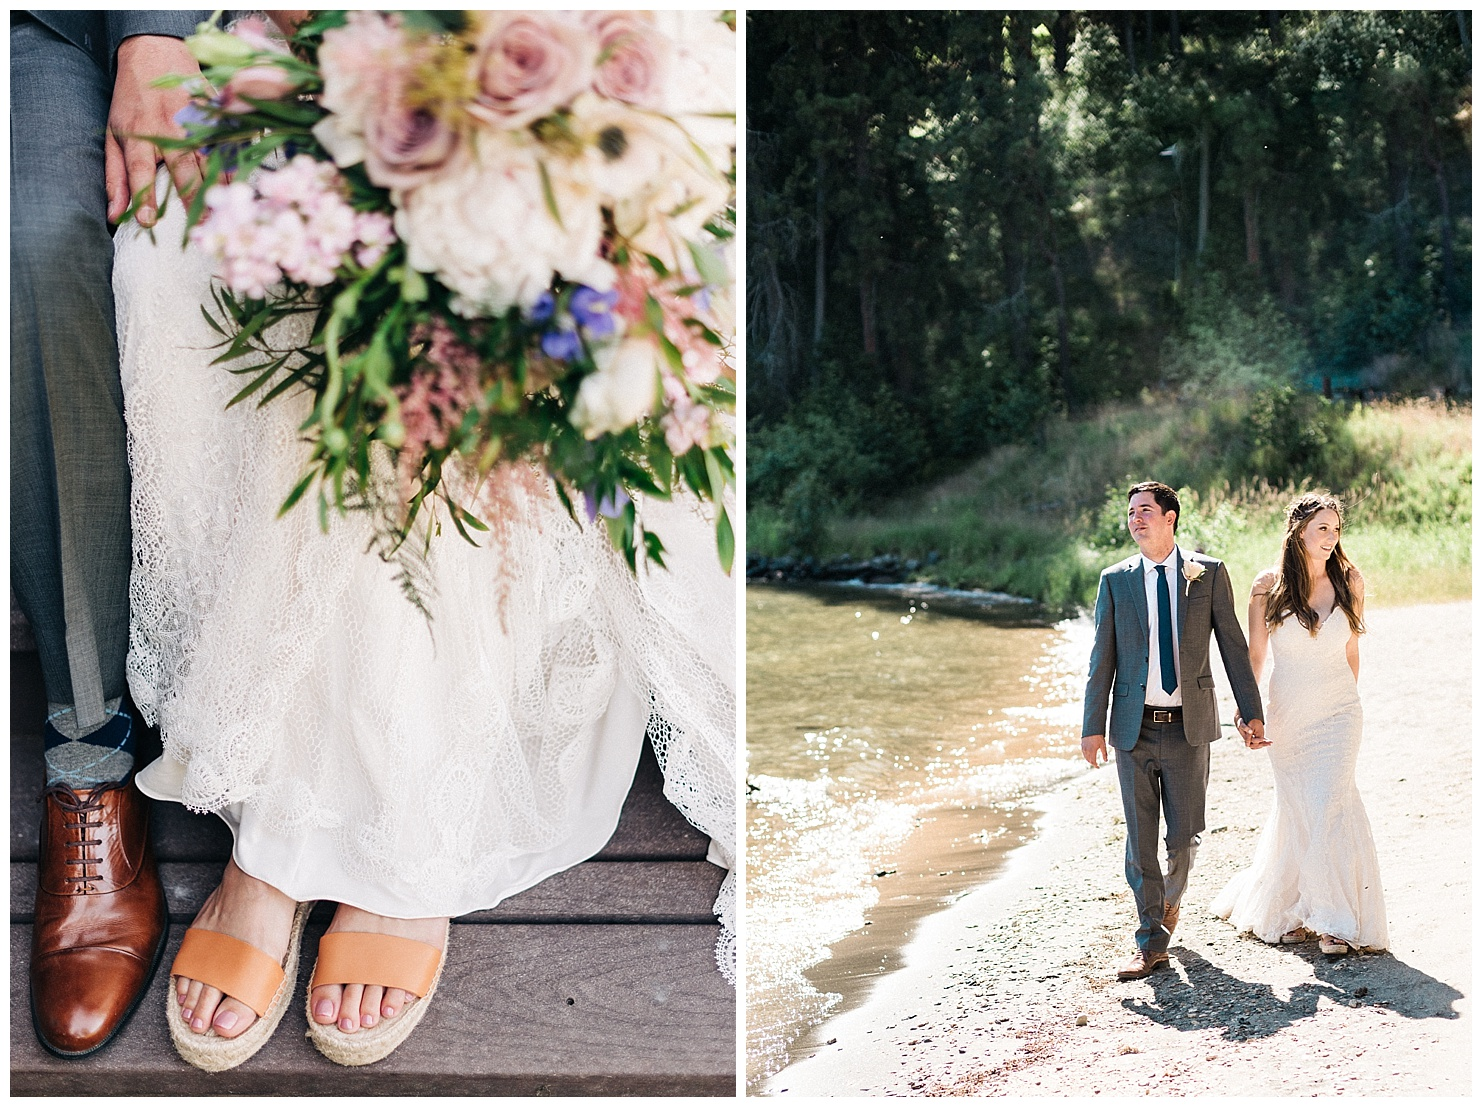 Portraits of a bride & groom at their Lake Coeur d'Alene Wedding by Forthright Photo